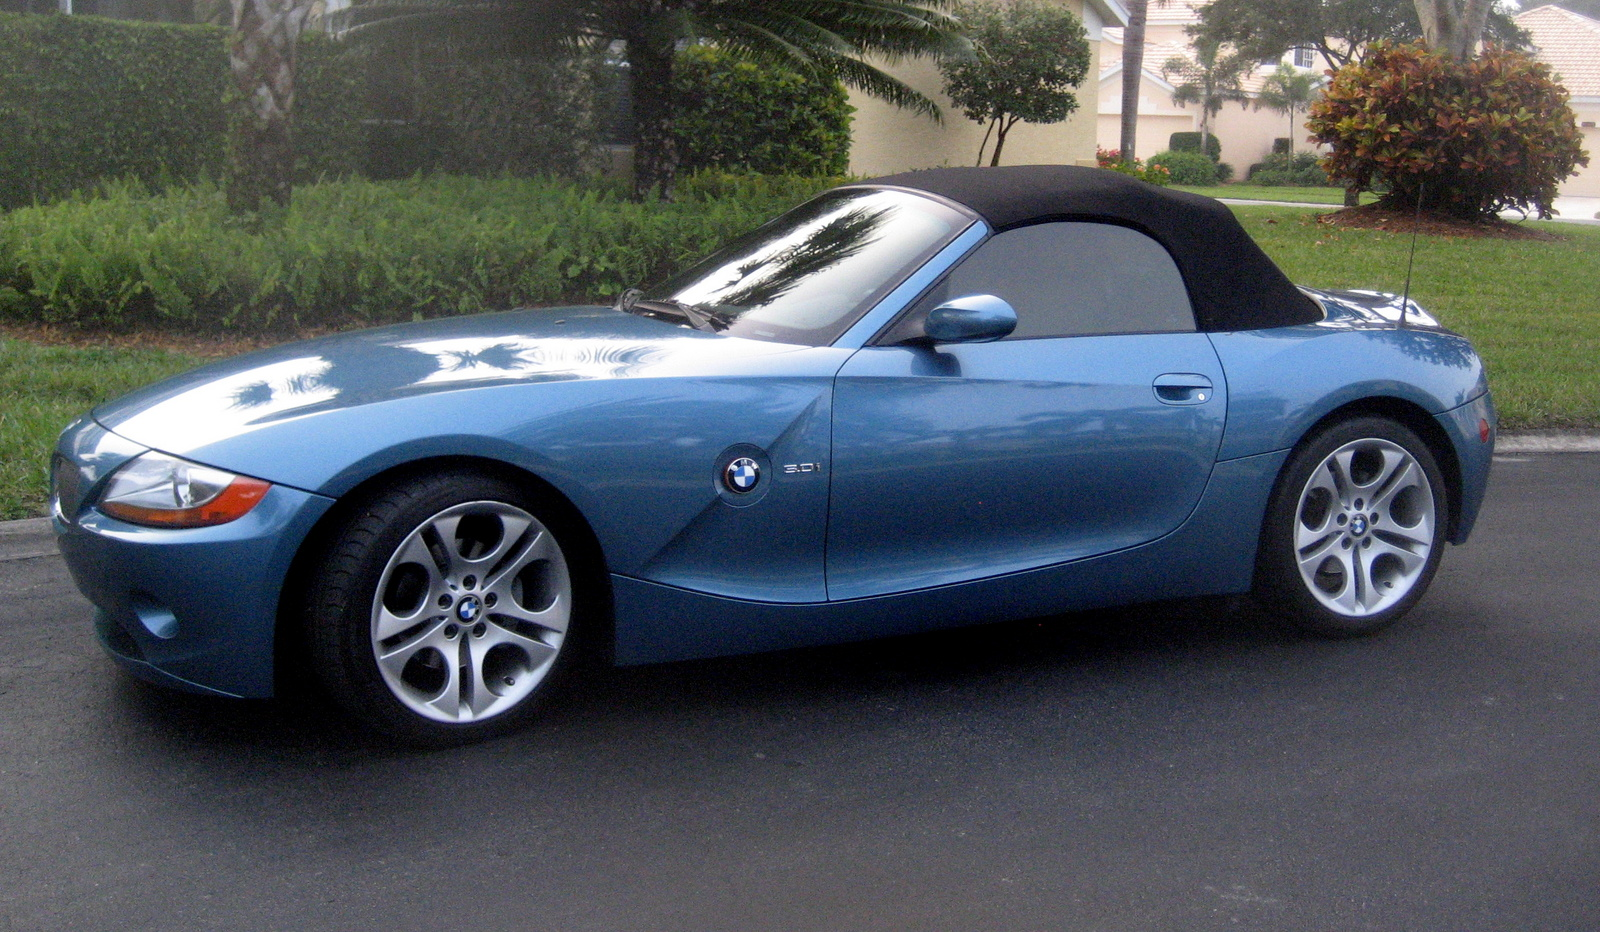 Bmw Z4 2003 Review Amazing Pictures And Images Look At The Car